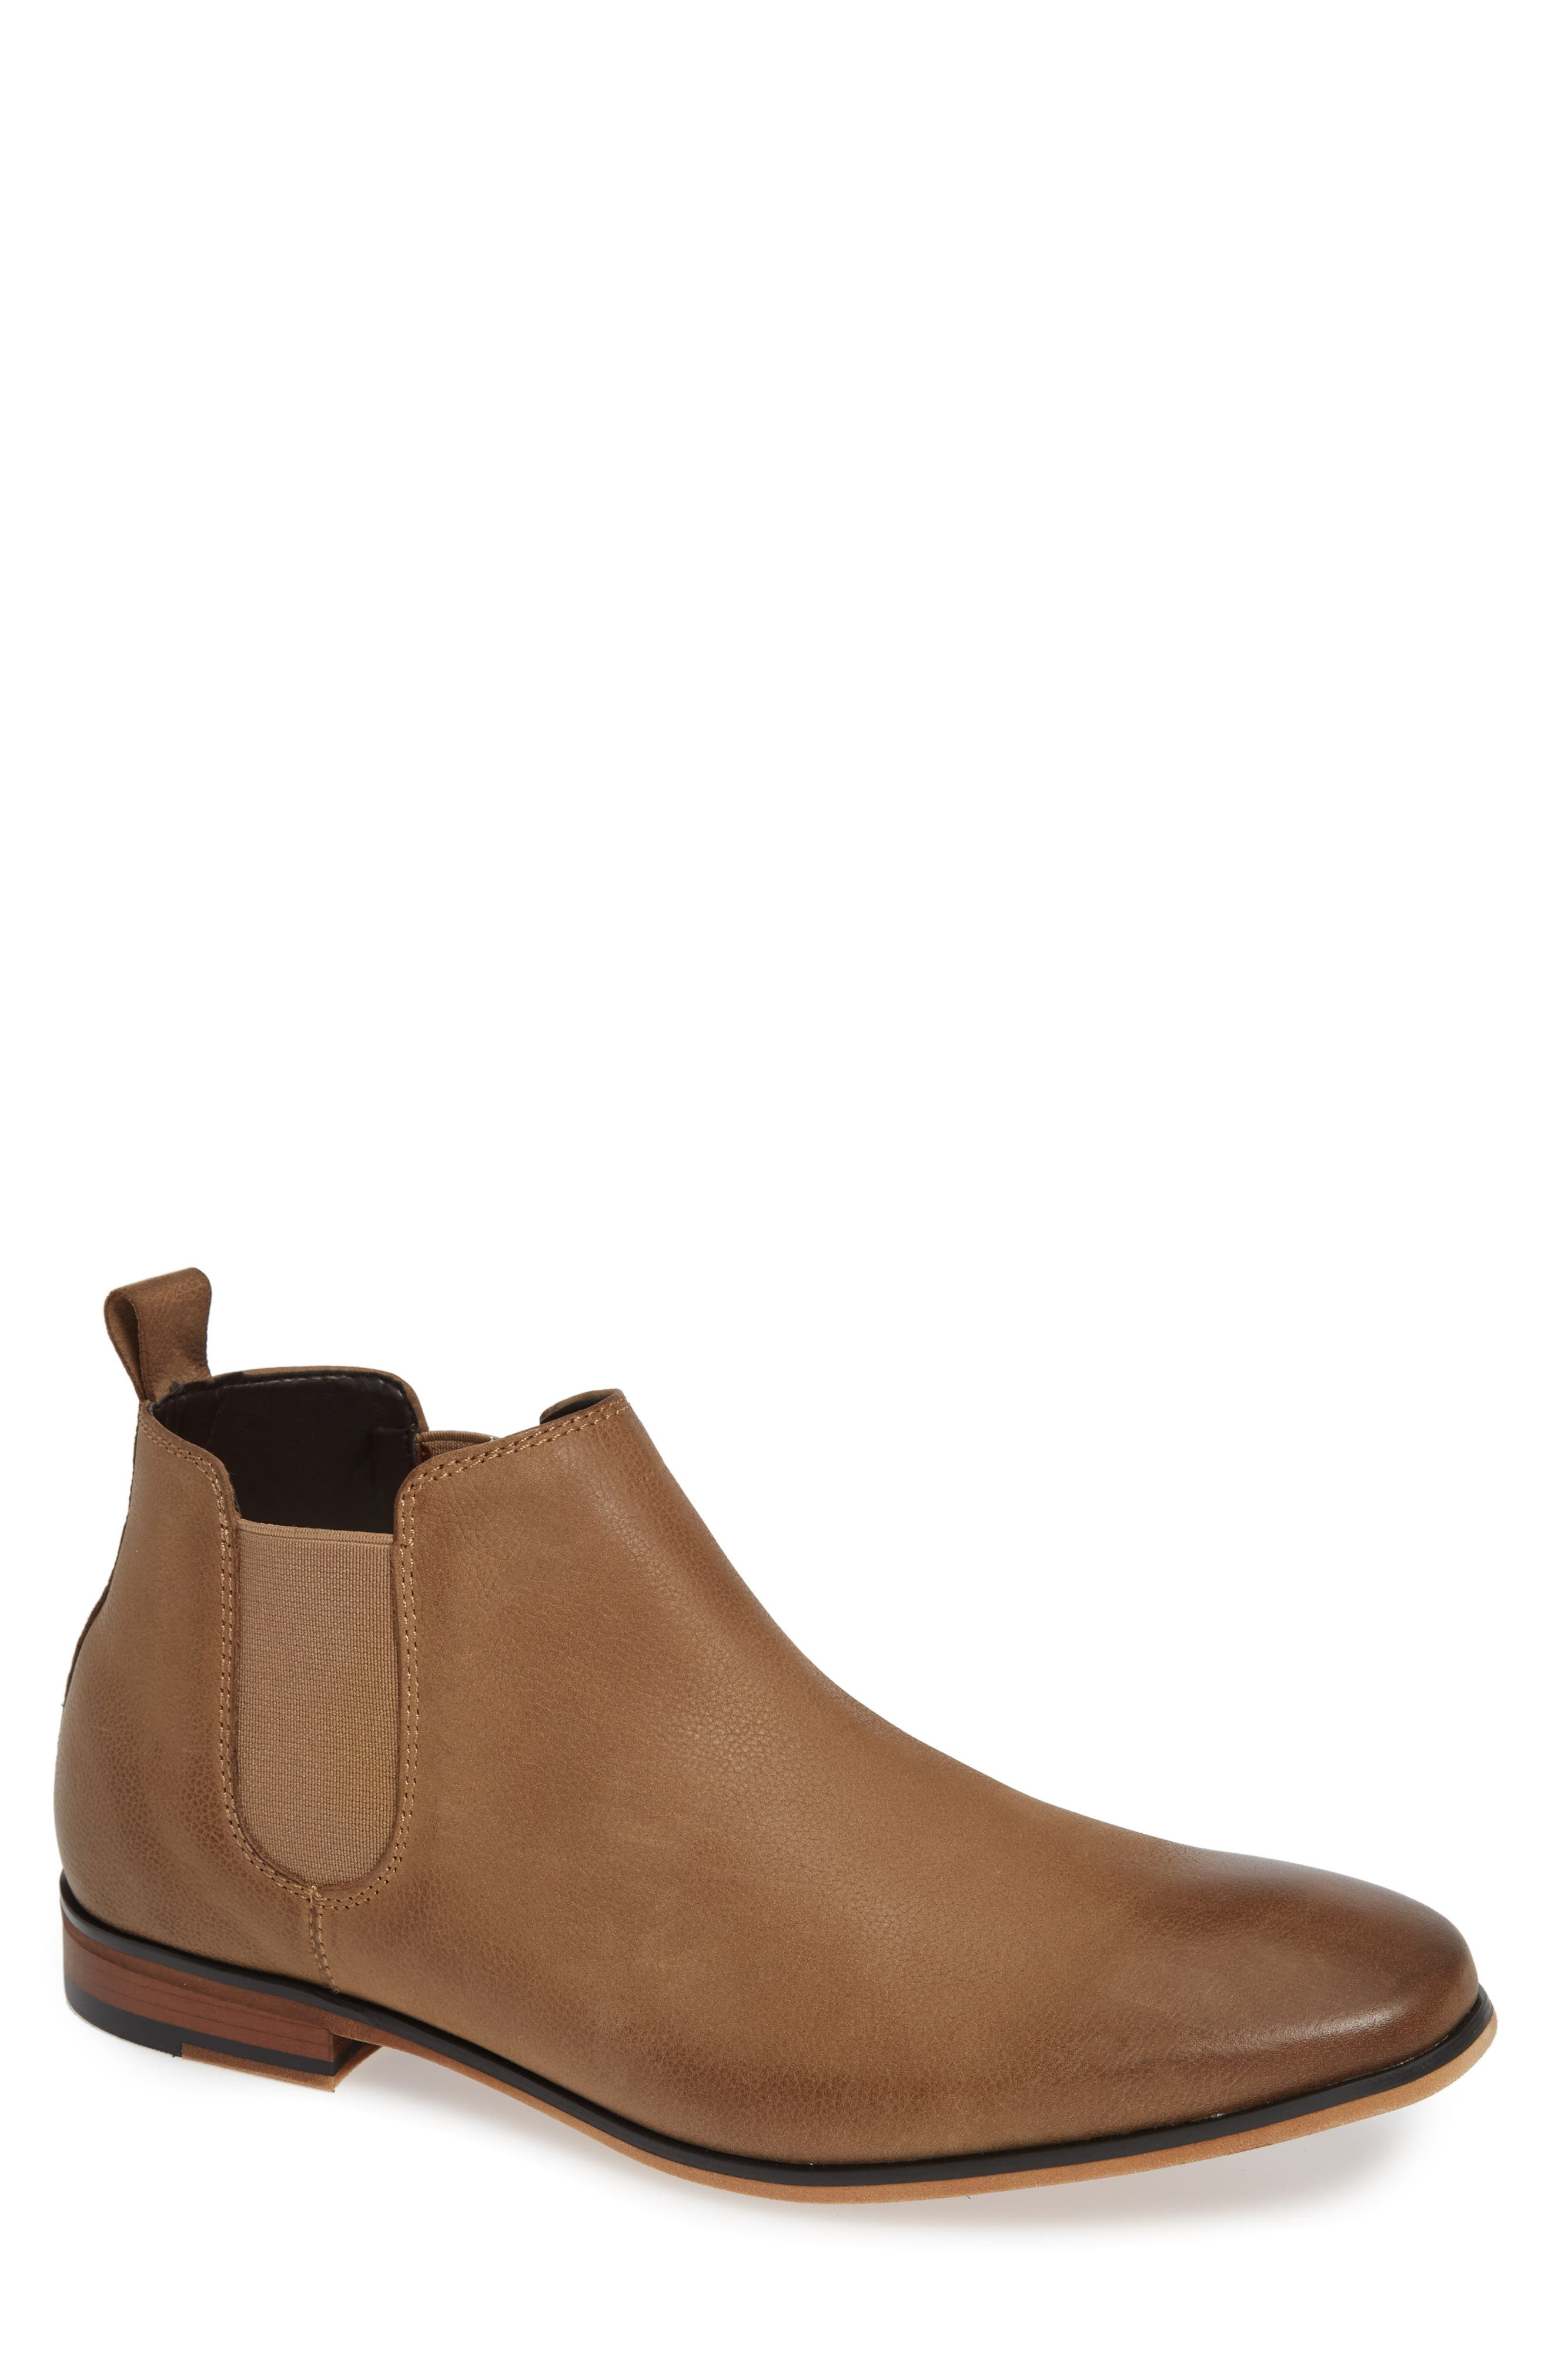 Guy Chelsea Boot,                             Main thumbnail 1, color,                             234